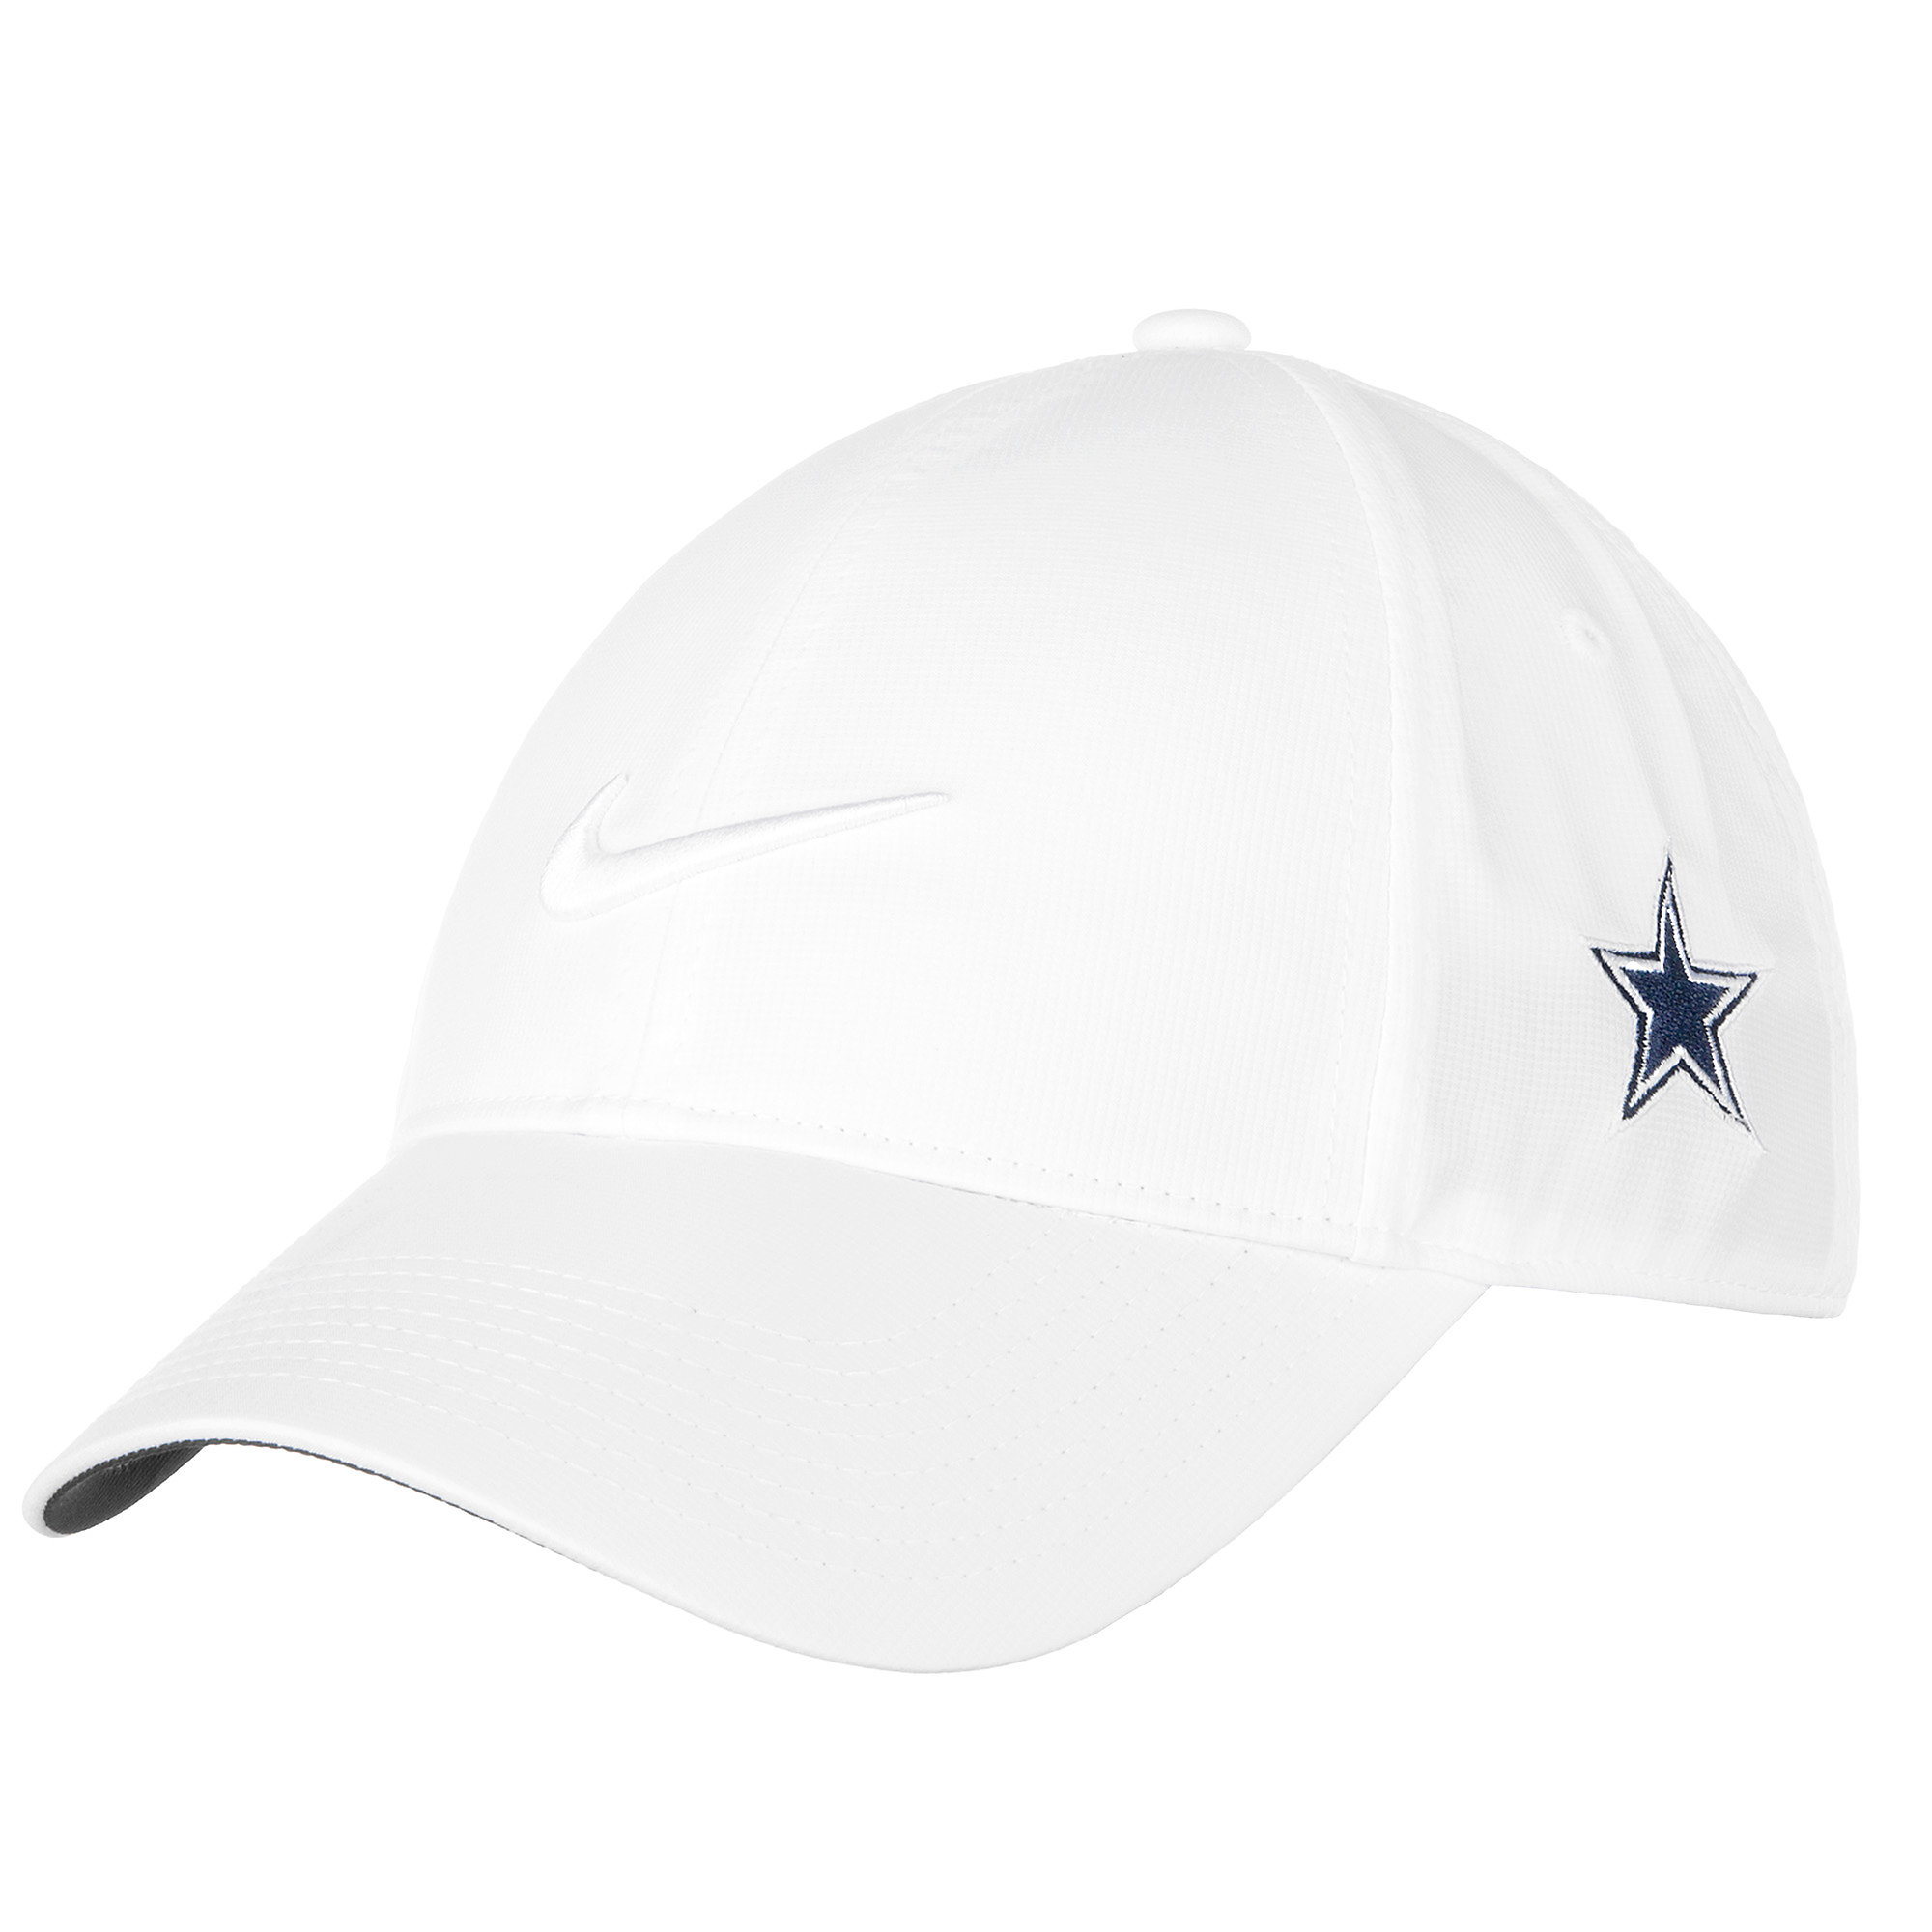 outlet store 7e2b8 d9a07 Dallas Cowboys Womens Nike Legacy91 Golf Hat   Fans United